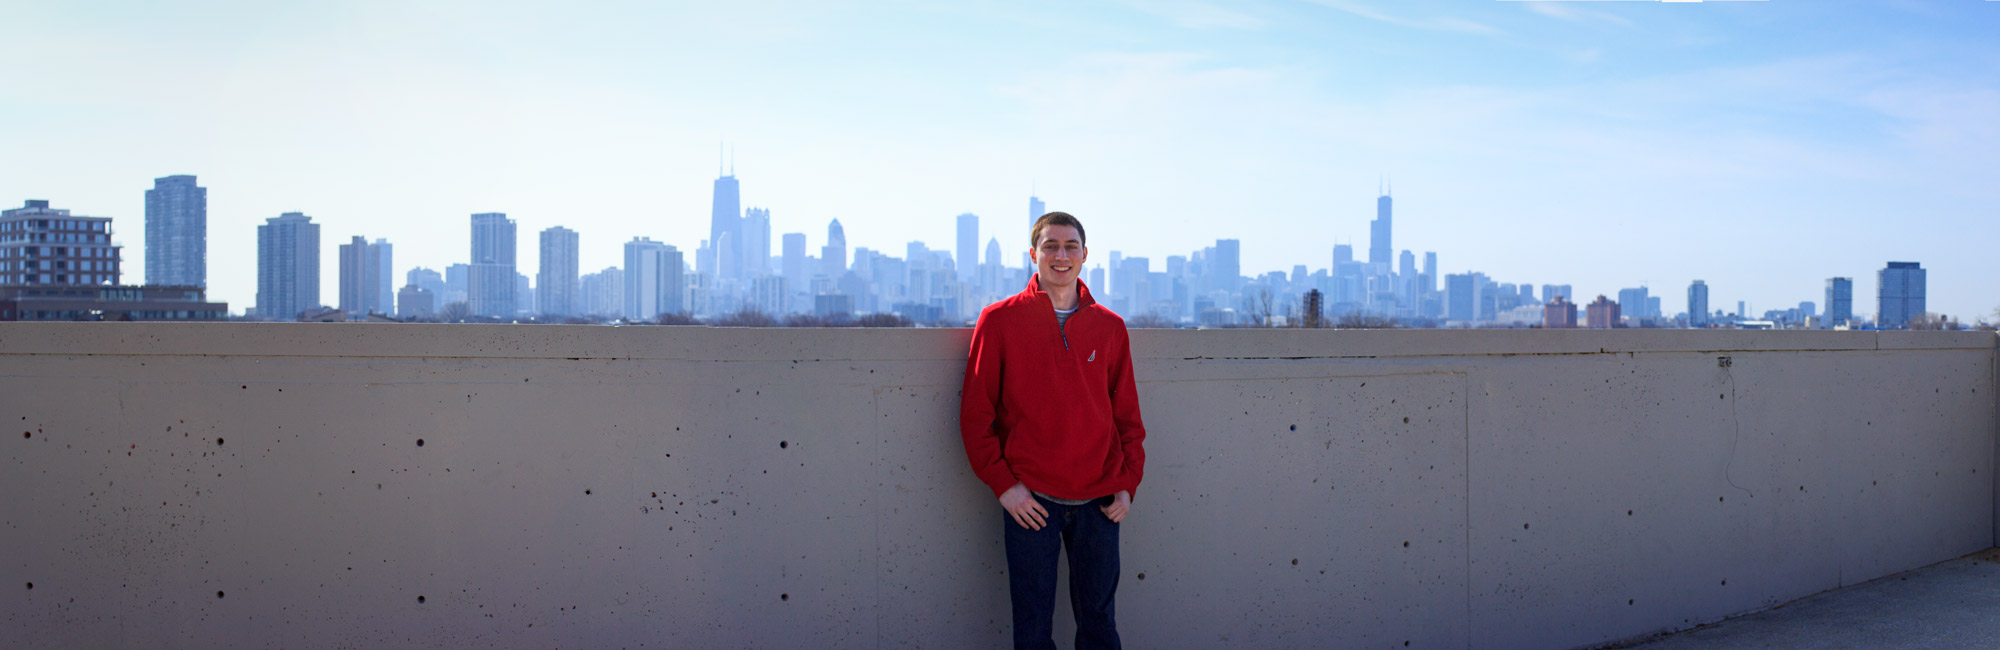 Tim in front of Chicago Skyline.